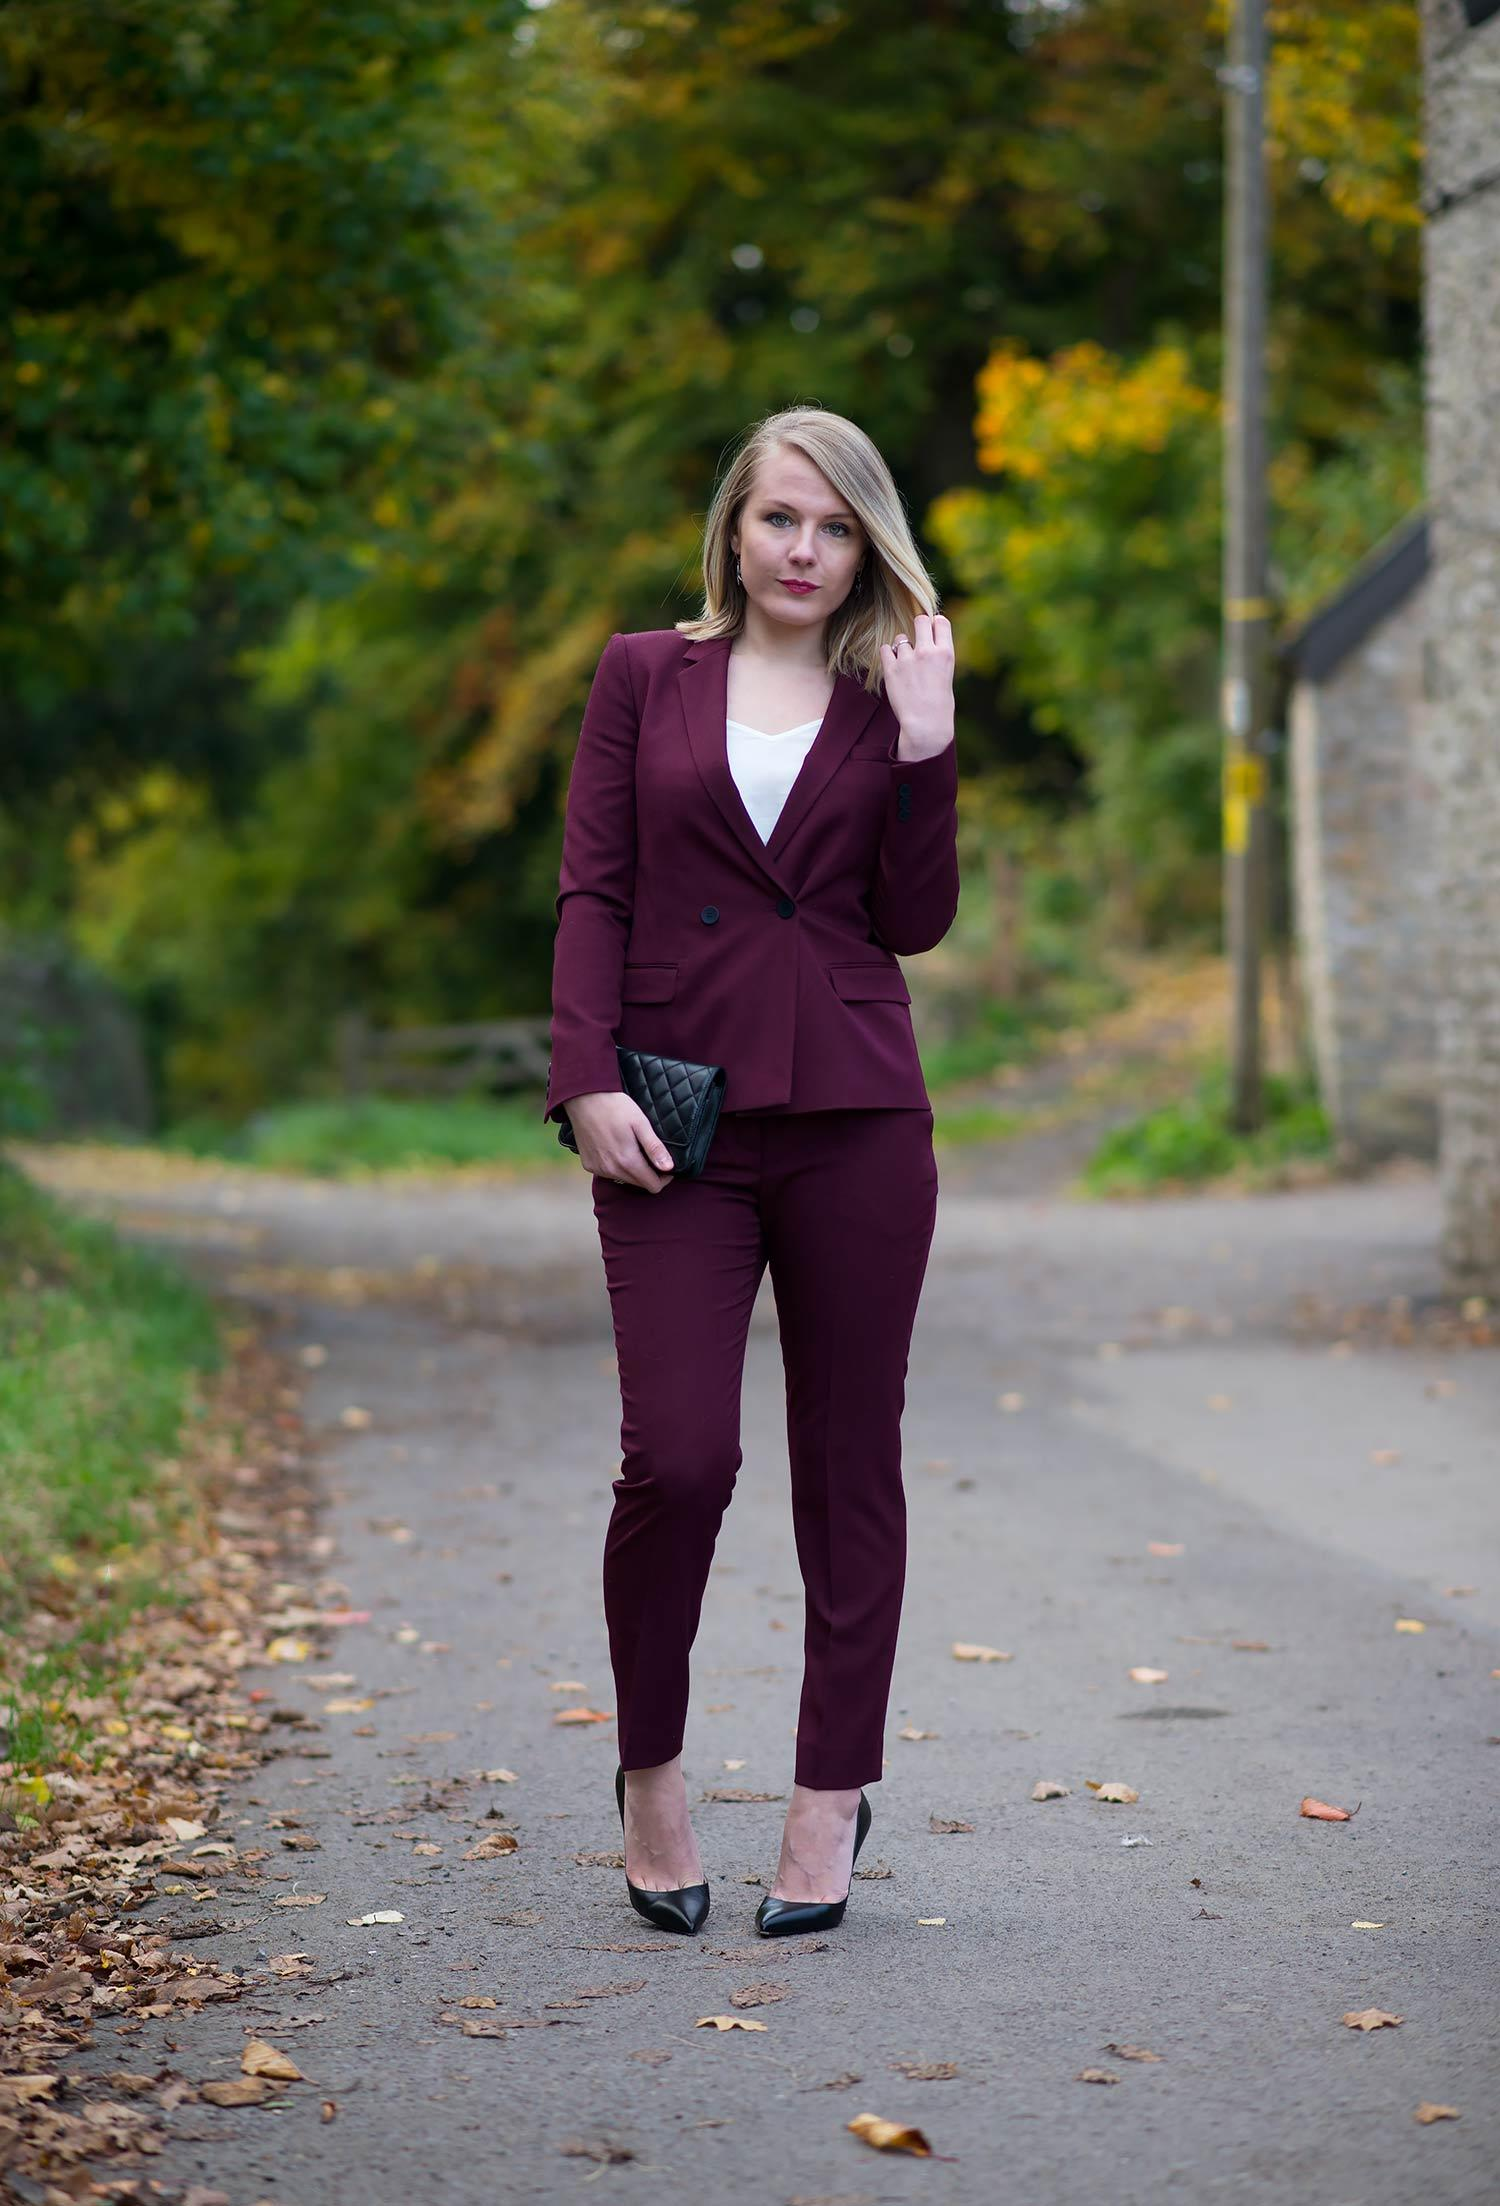 lorna-burford-topshop-tailored-burgundy-suit